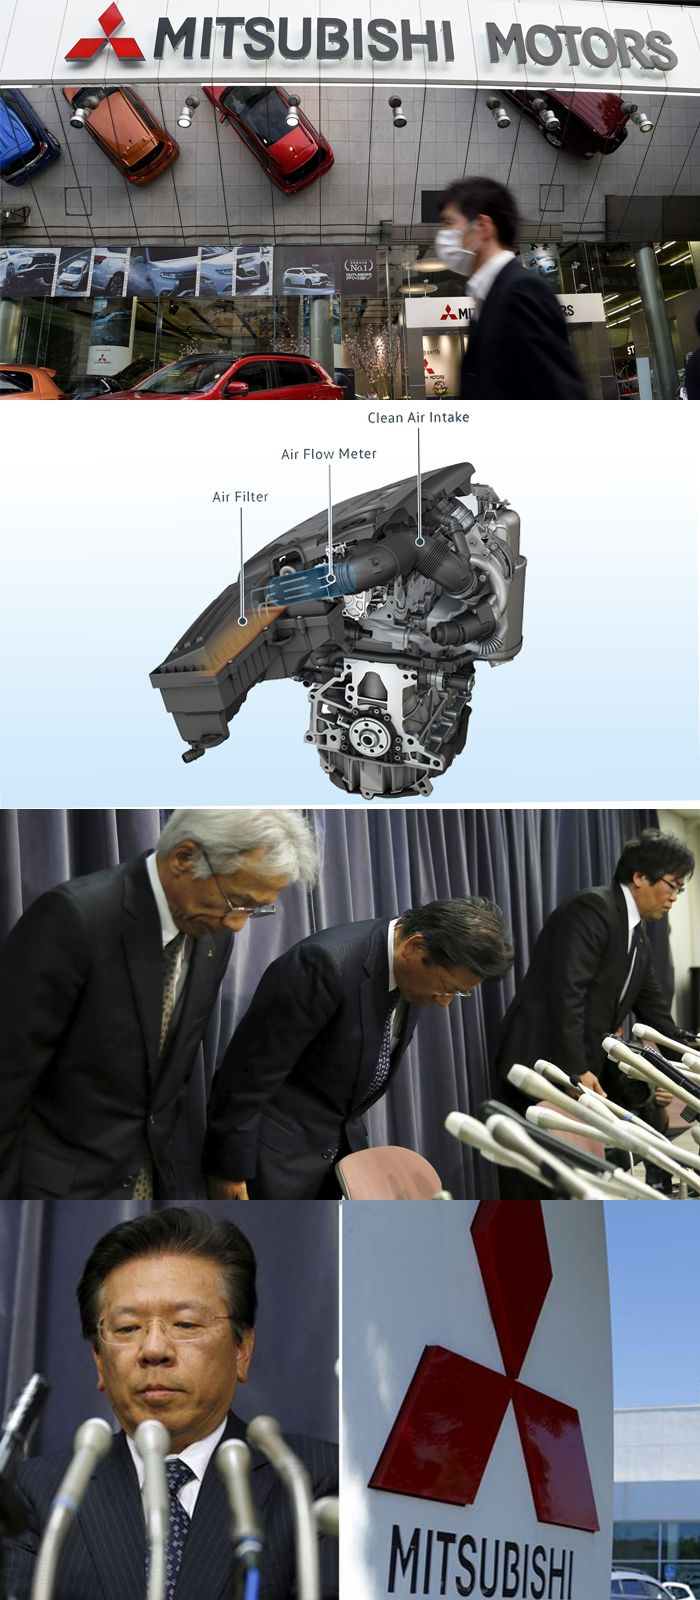 #Mitsubishi Admitted the Rigging #Fuel Tests For more information visit link:  http://www.engines4sale.co.uk/blog/category/mitsubishi/